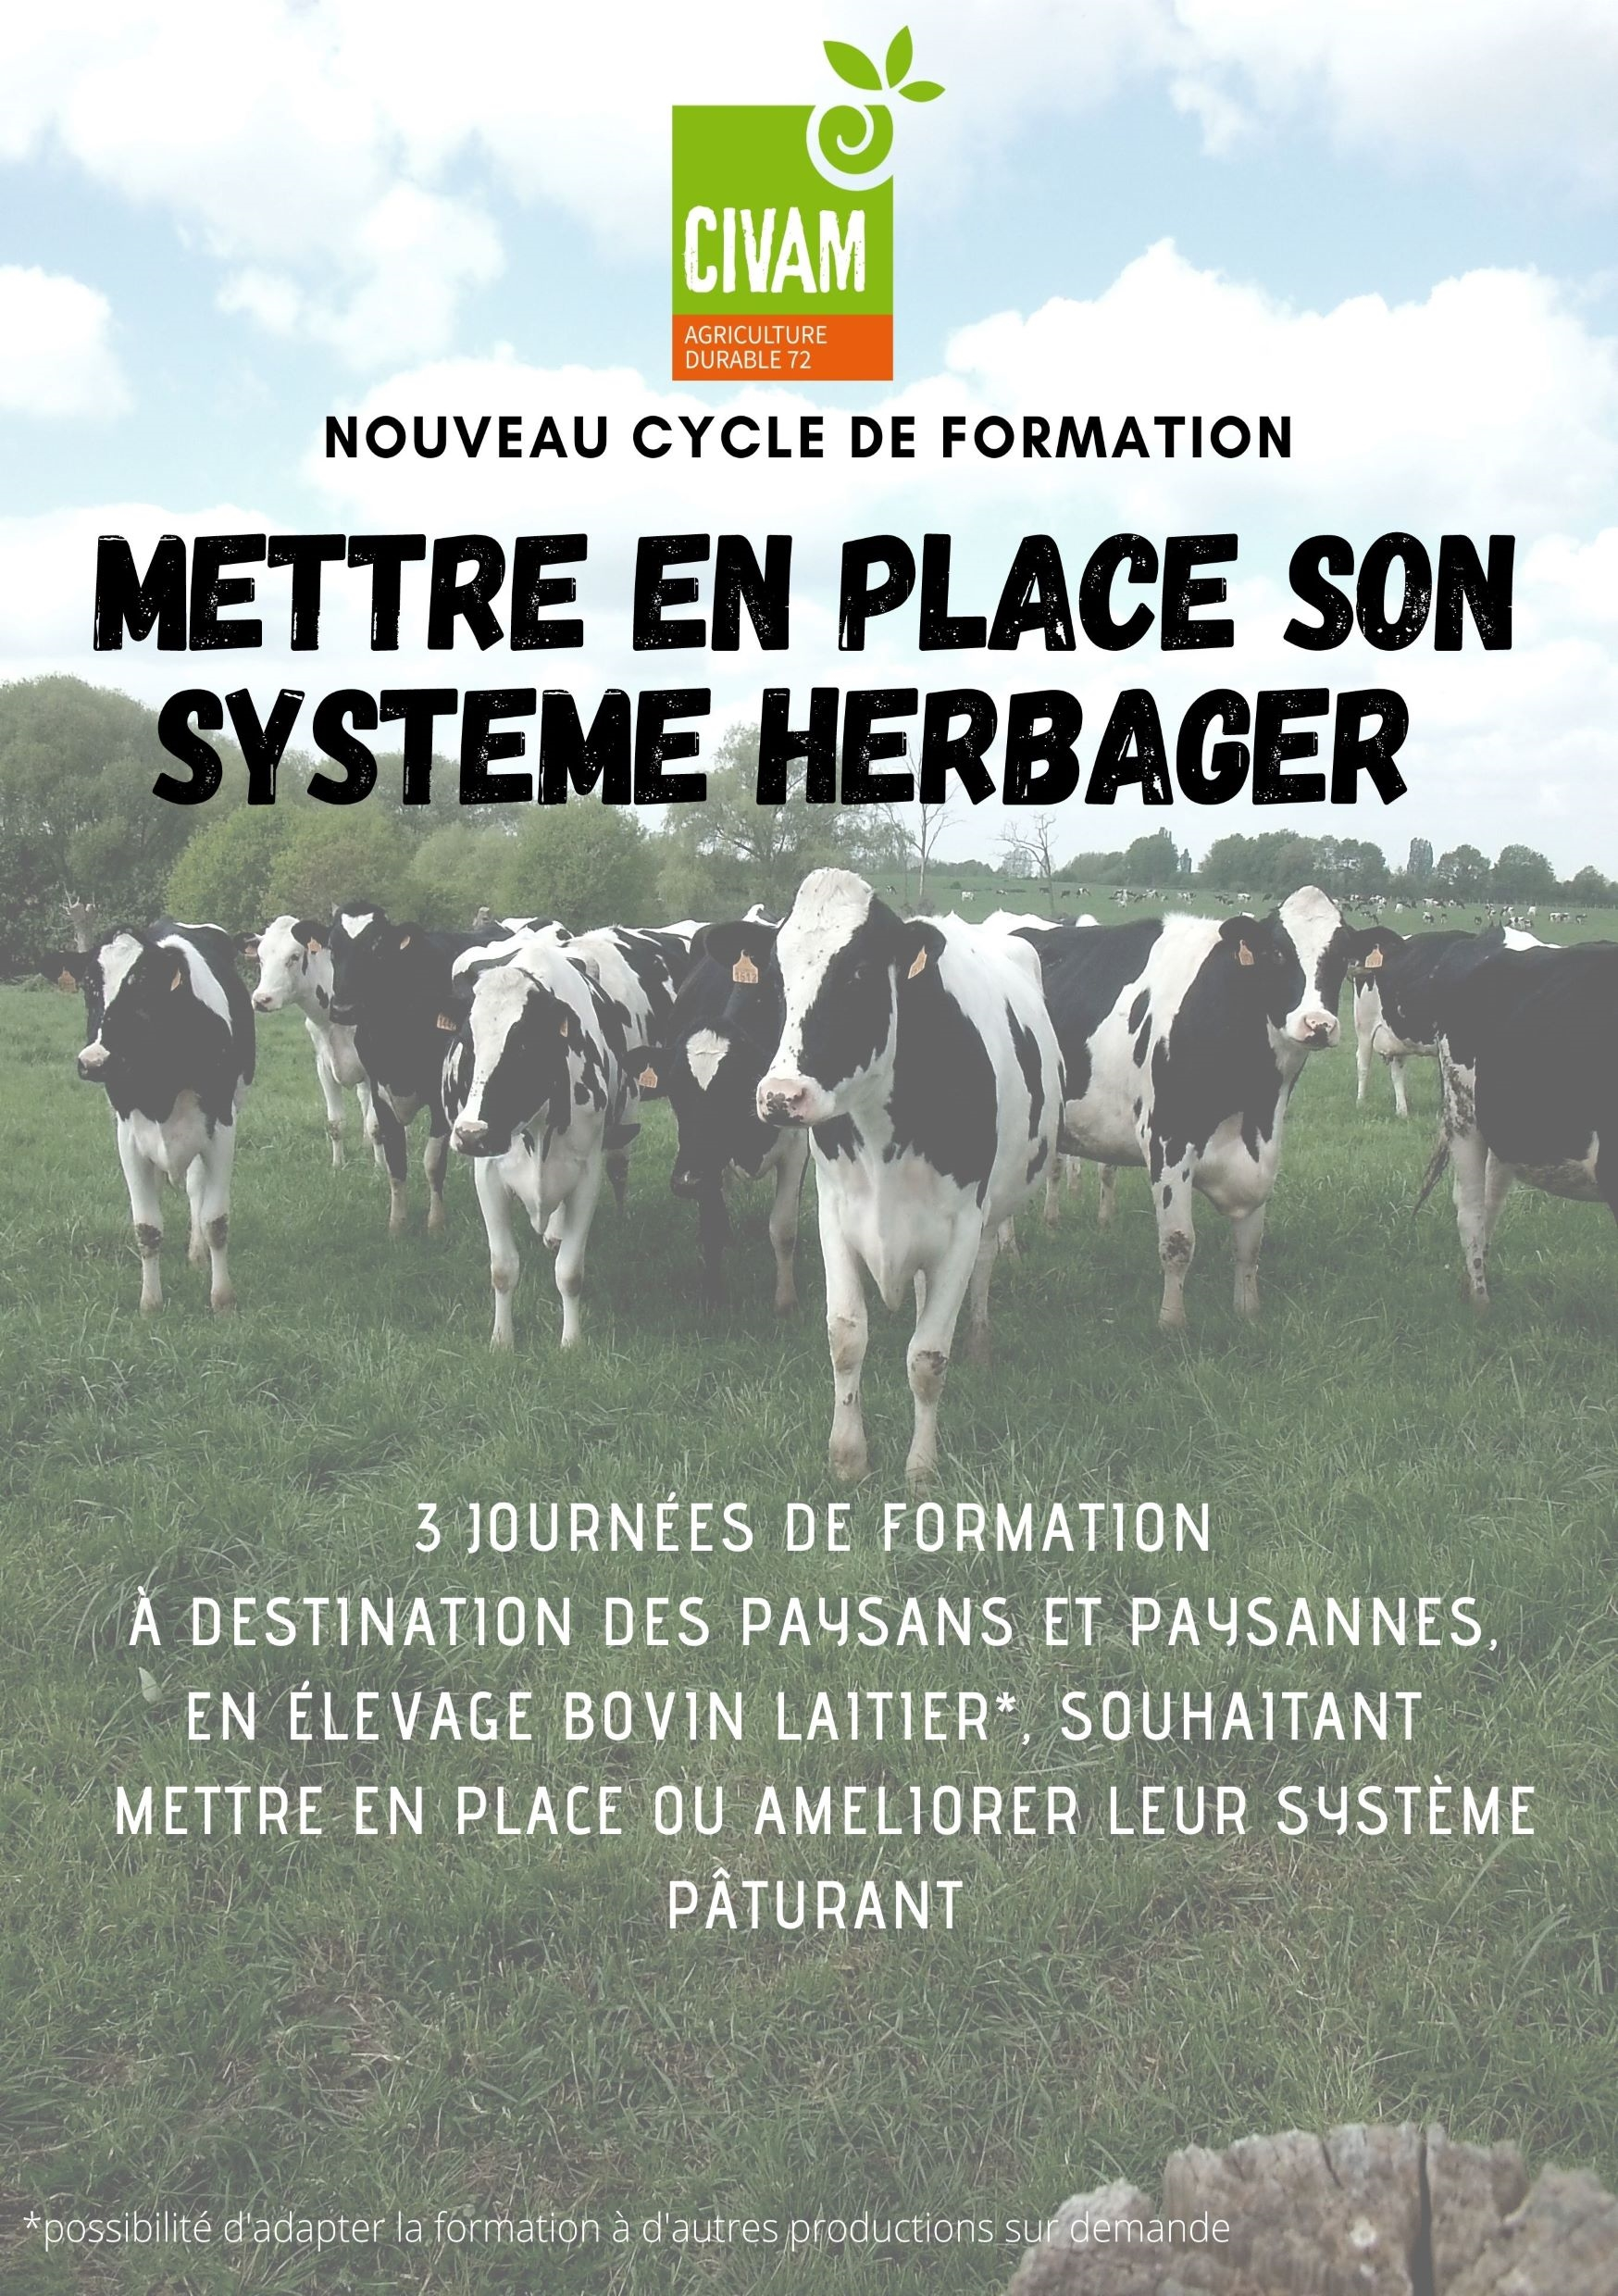 Mettre en place son système herbager